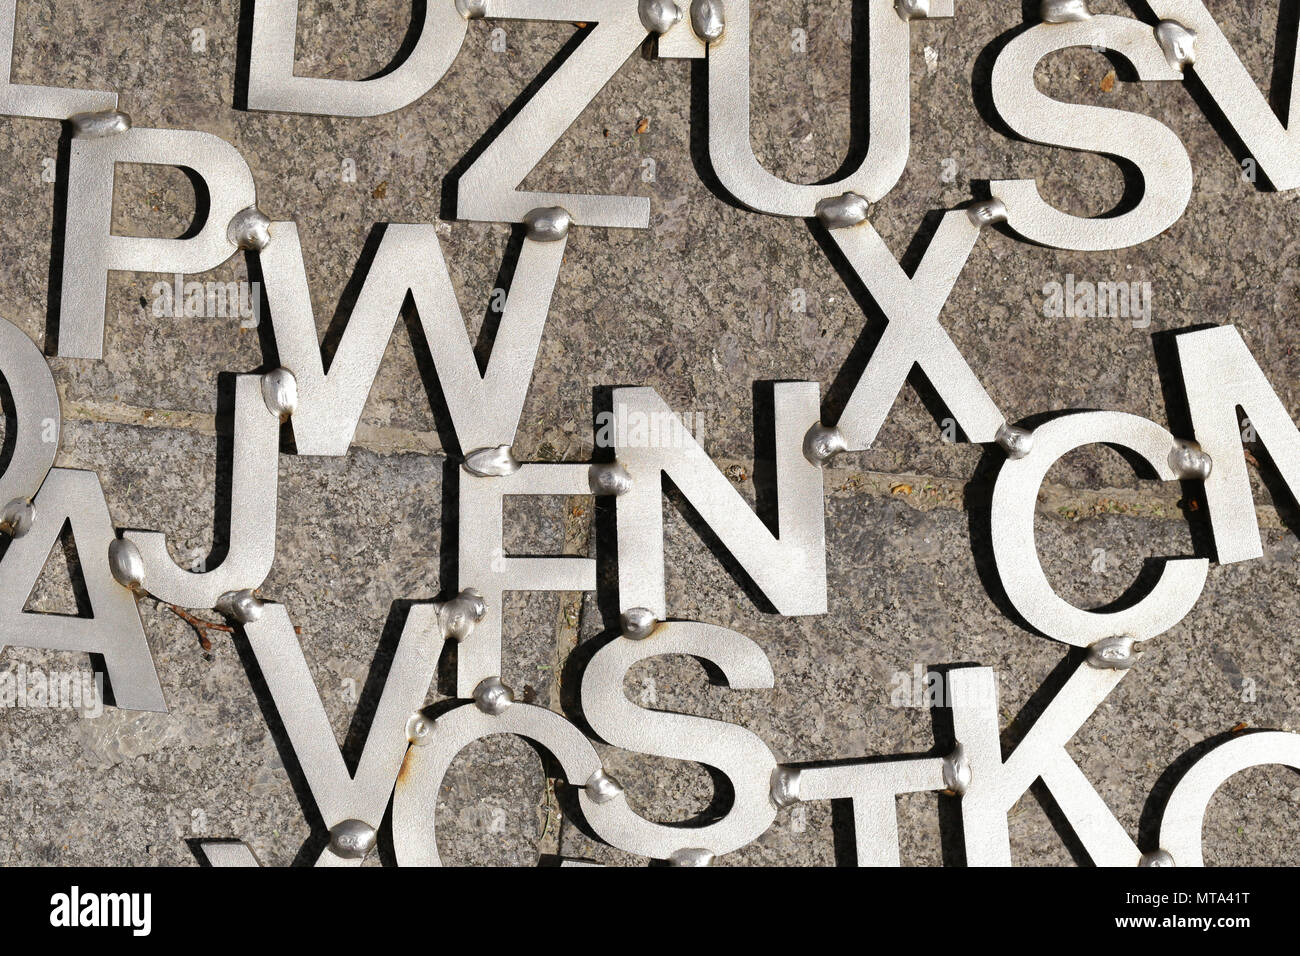 old metal letters on a gray background - Stock Image